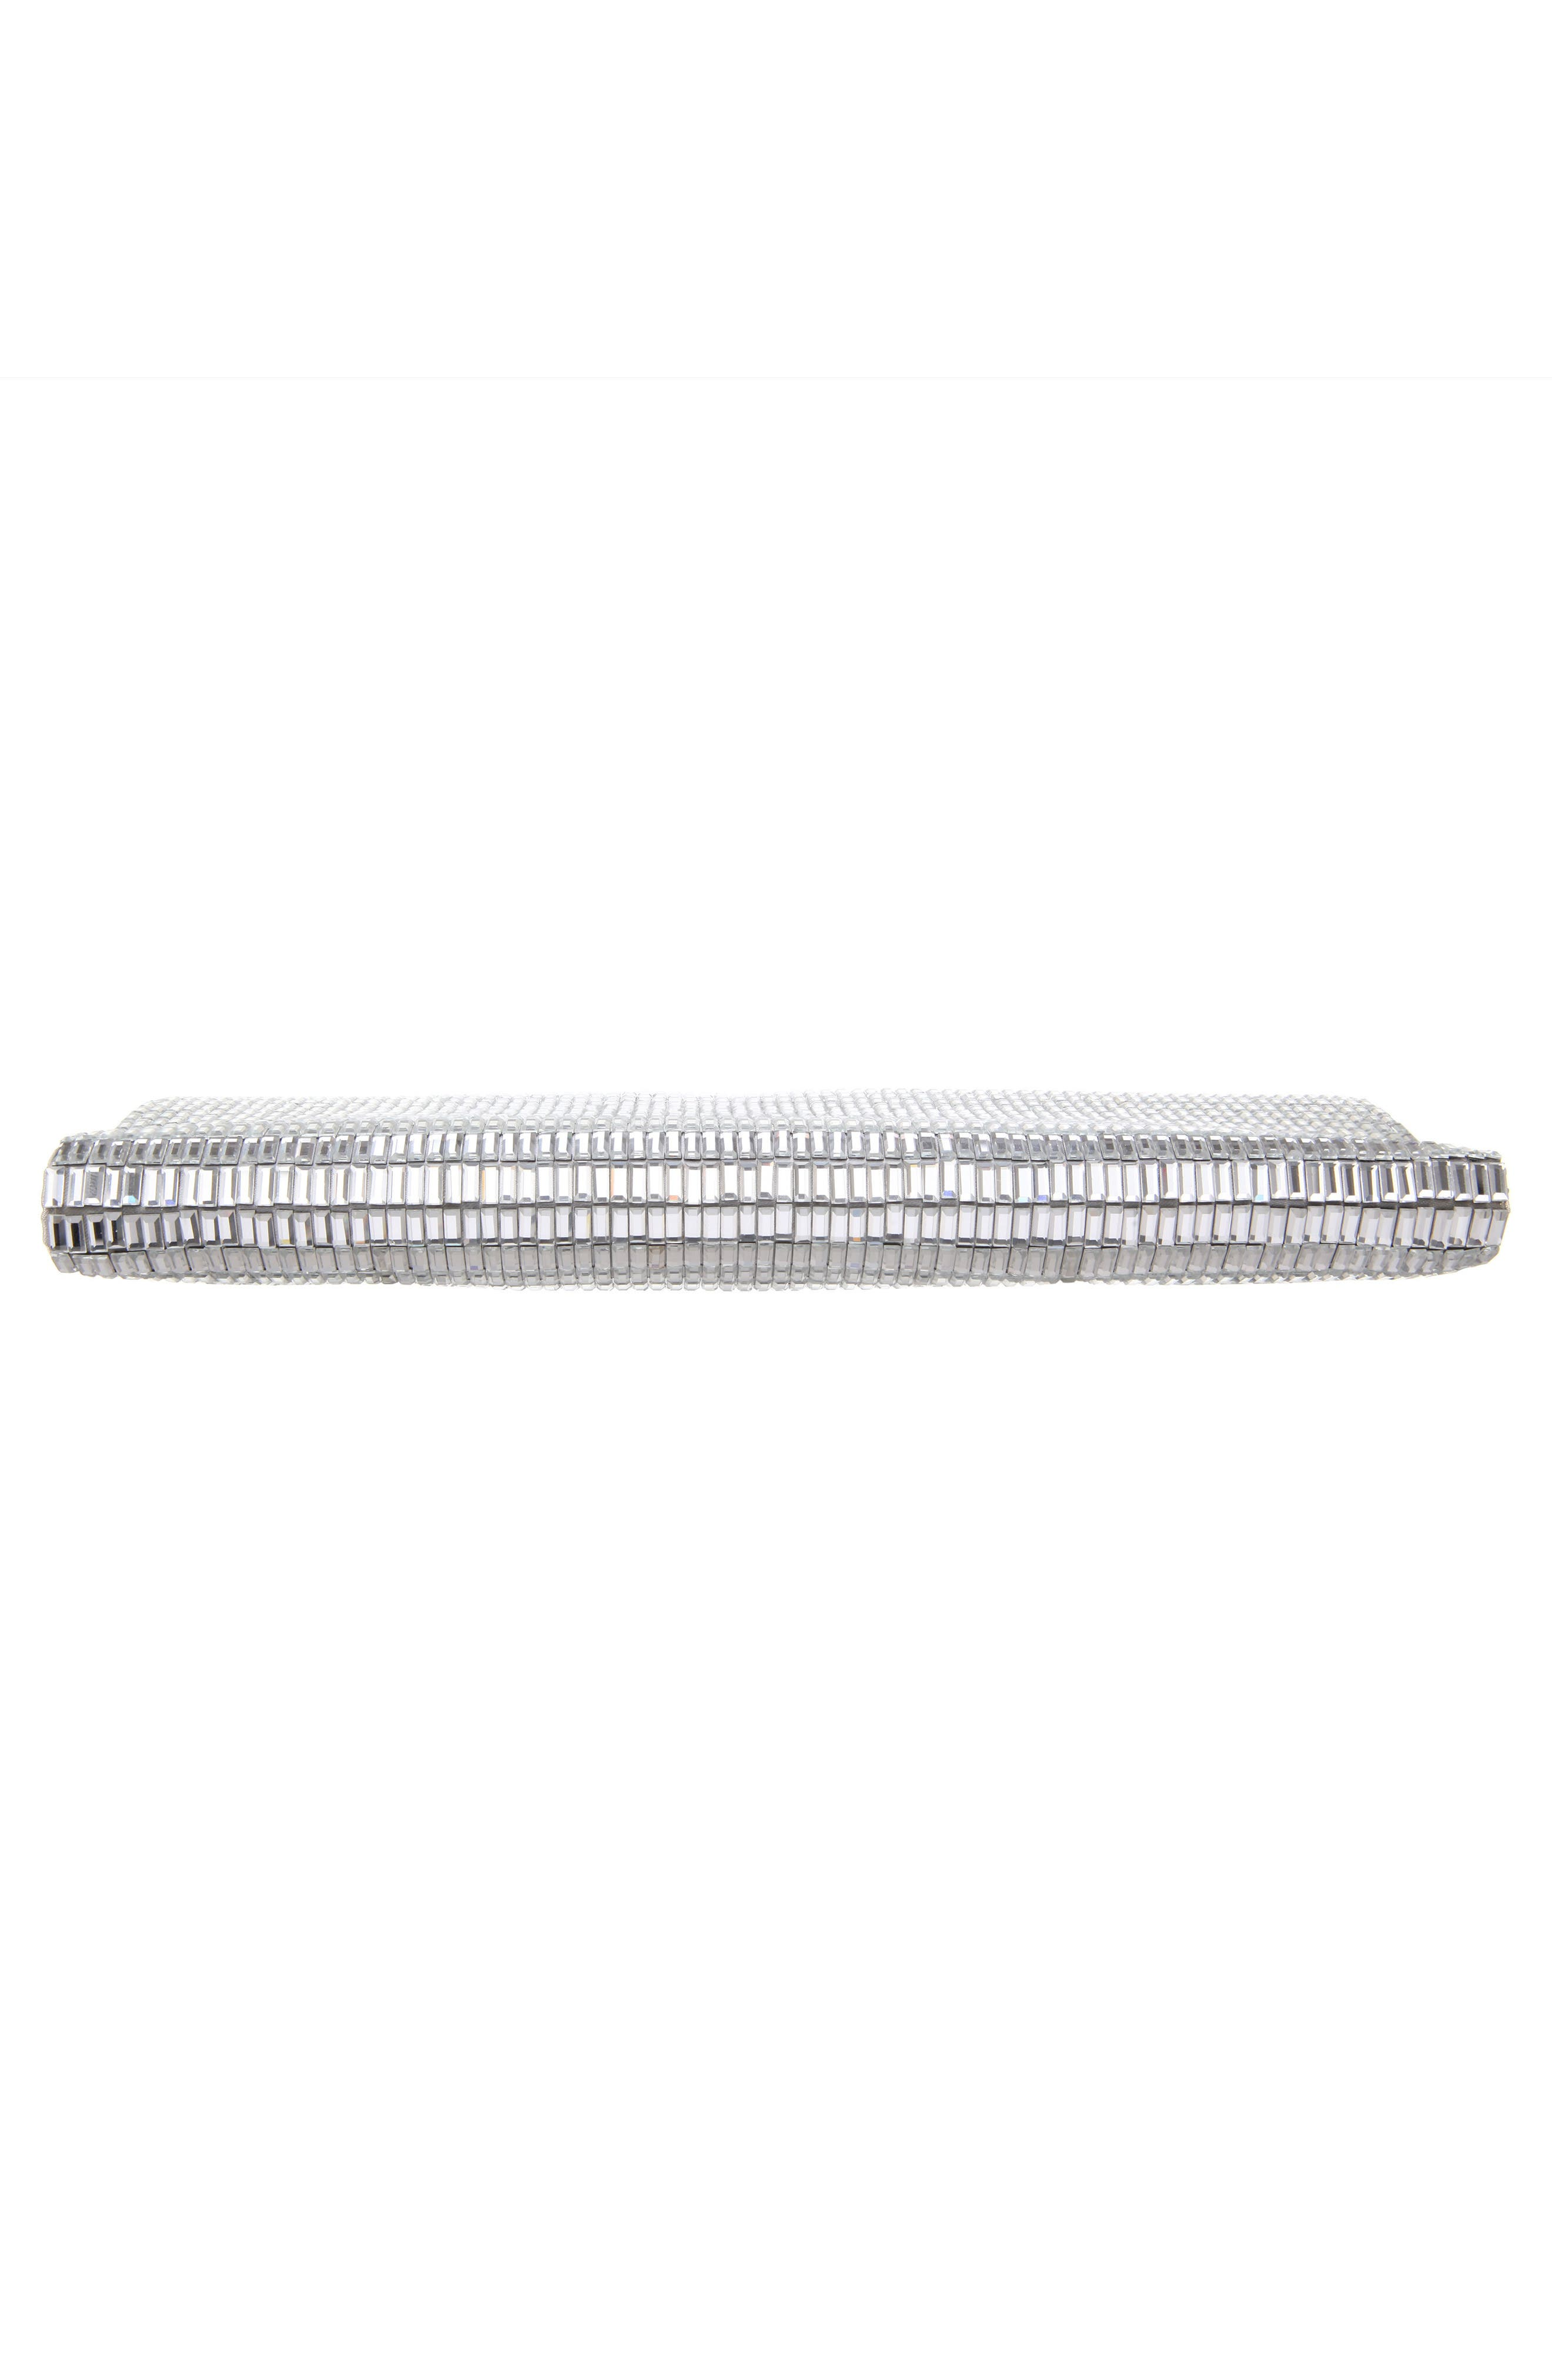 Crystal Foldover Clutch,                             Alternate thumbnail 5, color,                             SILVER